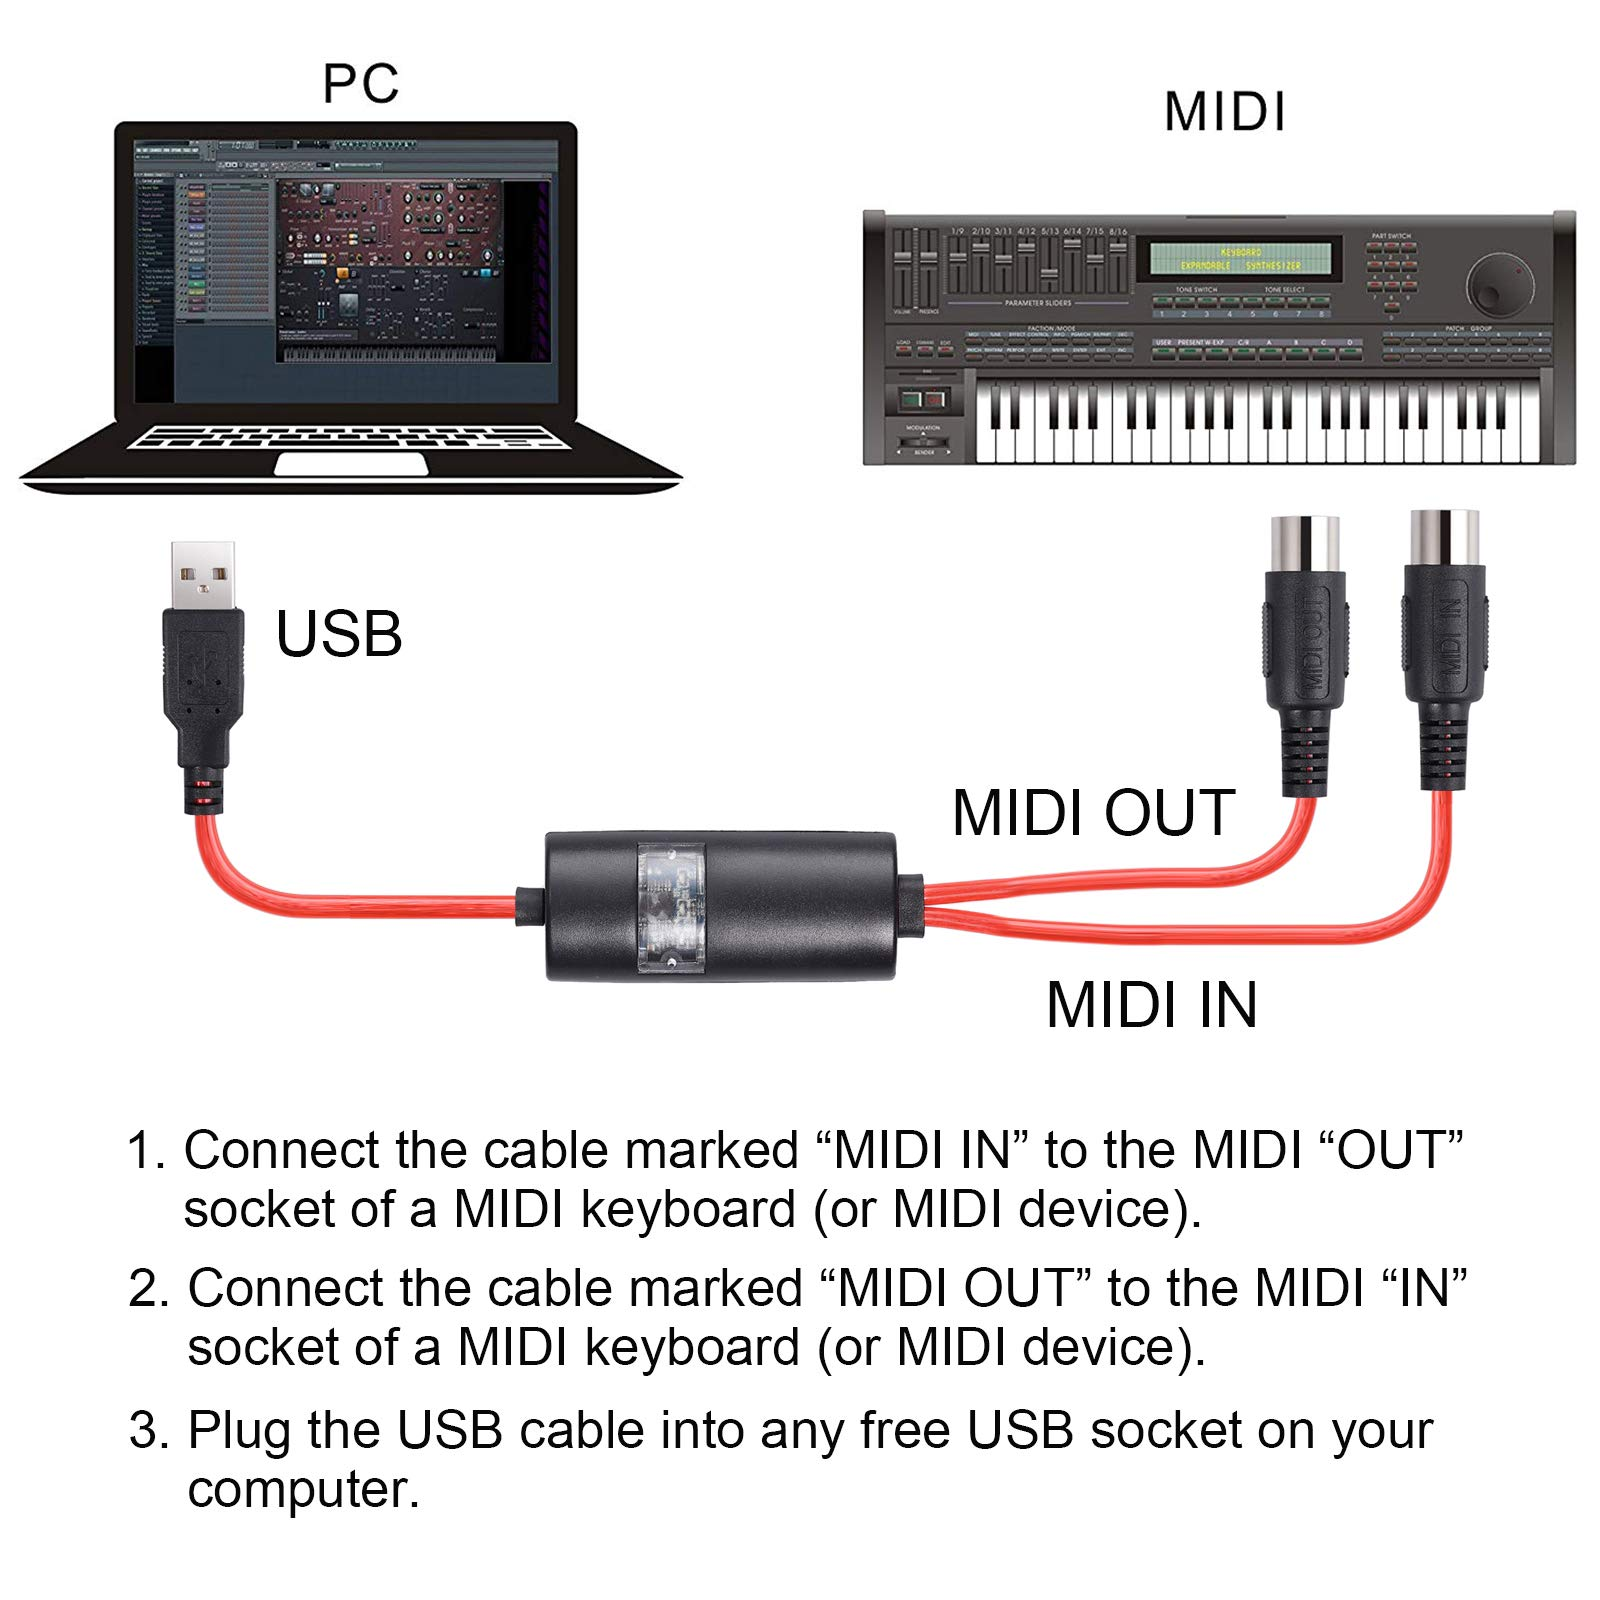 Proster 5 Pin USB to MIDI Interface USB-MIDI Converter Piano USB IN-MIDI OUT Cable MIDI Control for Mac PC Laptop Music Piano keyboard 6.5Ft by Proster (Image #2)